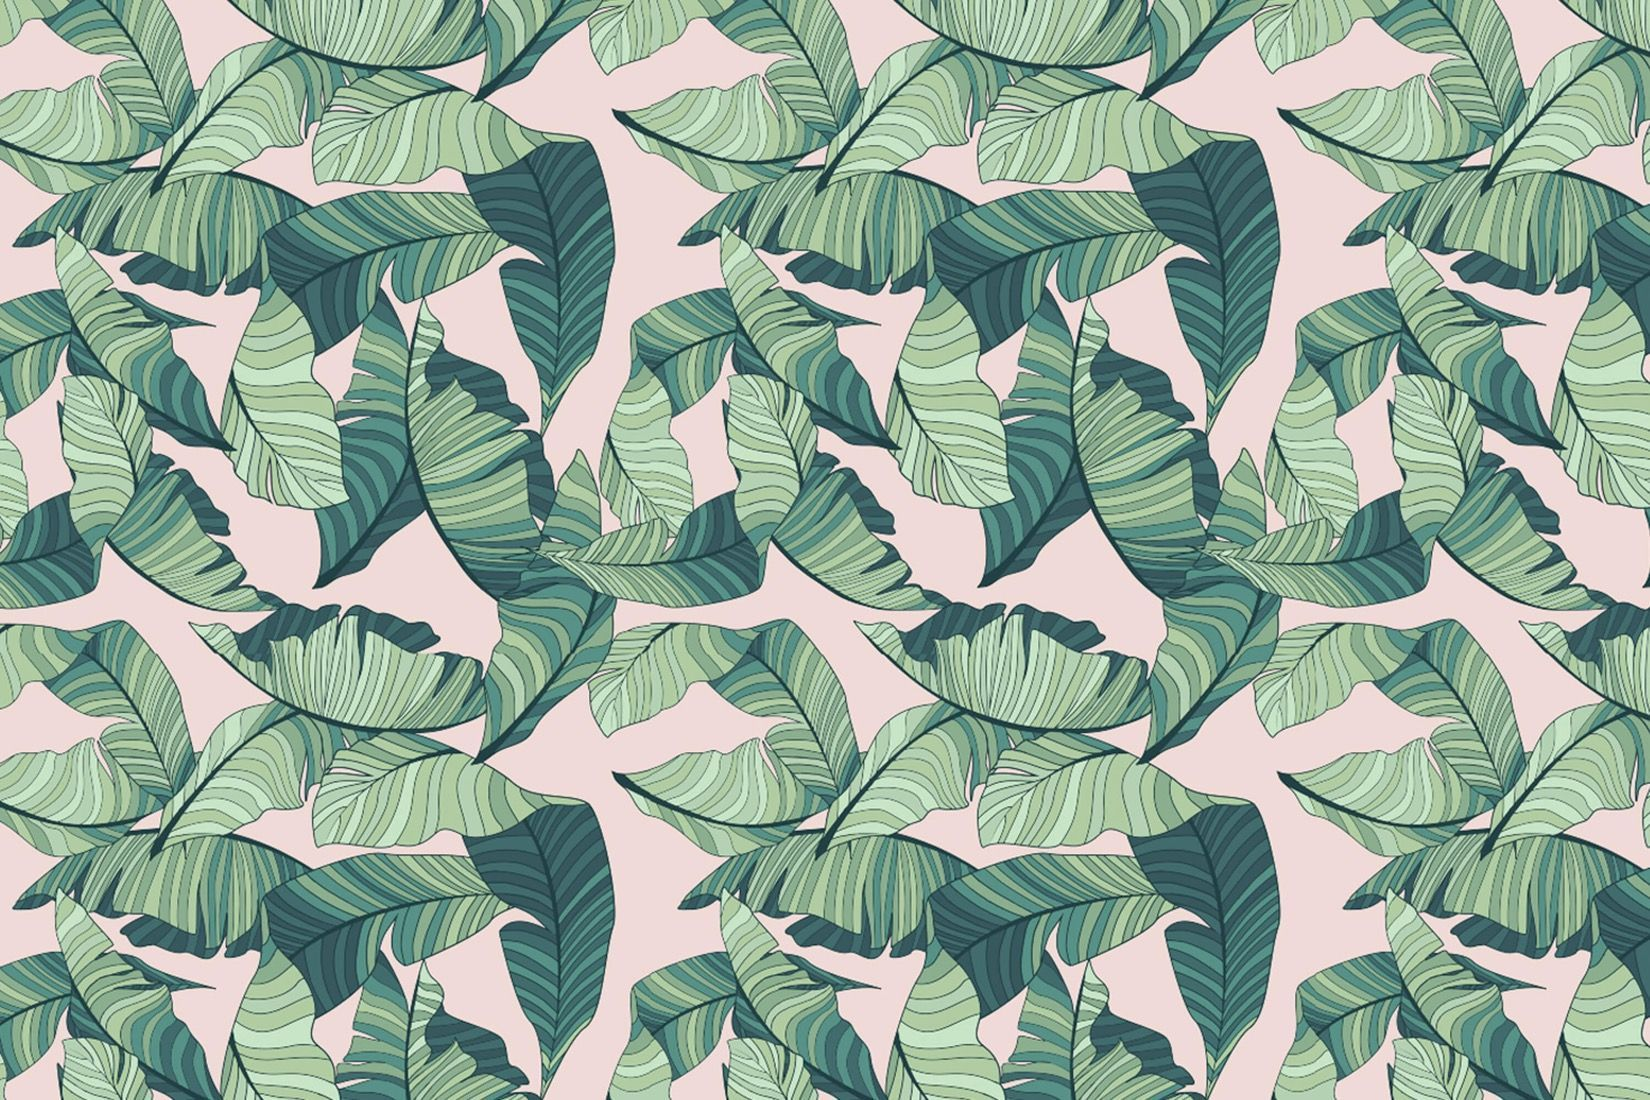 Pink Tropical Leaves Wallpapers Top Free Pink Tropical Leaves Backgrounds Wallpaperaccess Variegated houseplants are cute and all, but sometimes it's not easy being green. pink tropical leaves wallpapers top